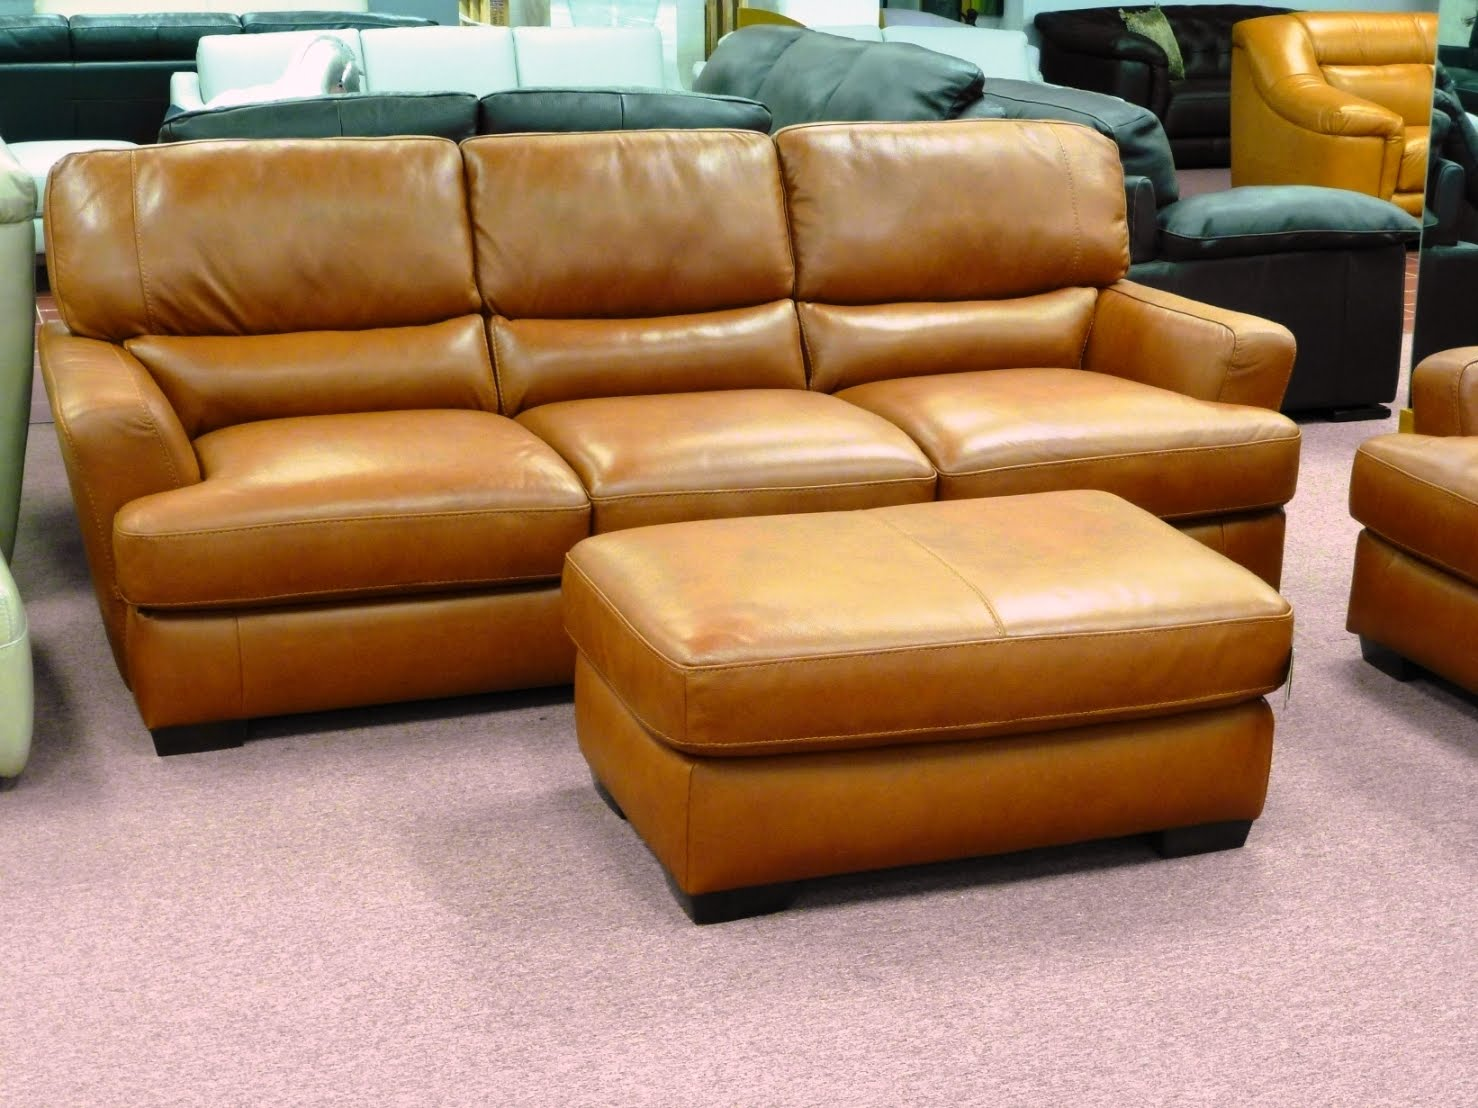 natuzzi leather sofas sectionals by interior concepts furniture orange leather sofa by. Black Bedroom Furniture Sets. Home Design Ideas